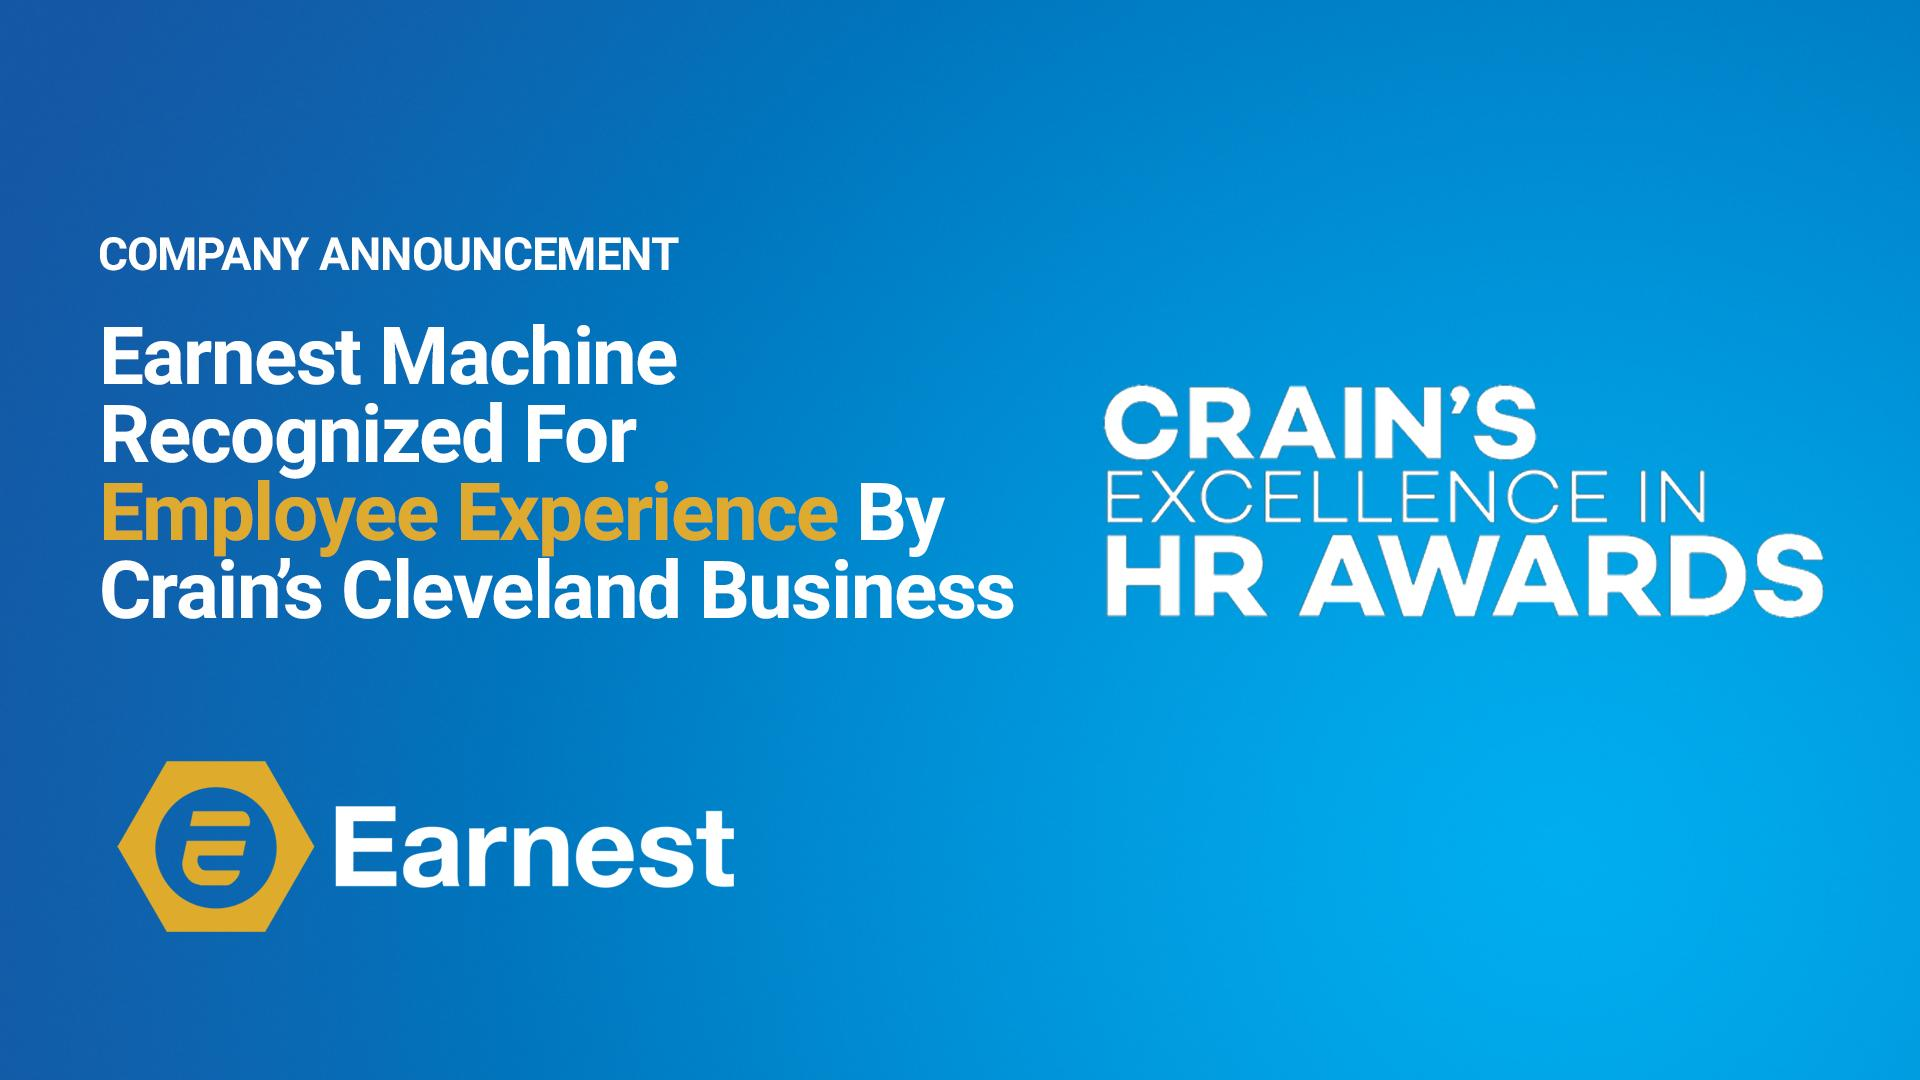 Earnest Machine Wins HR Award